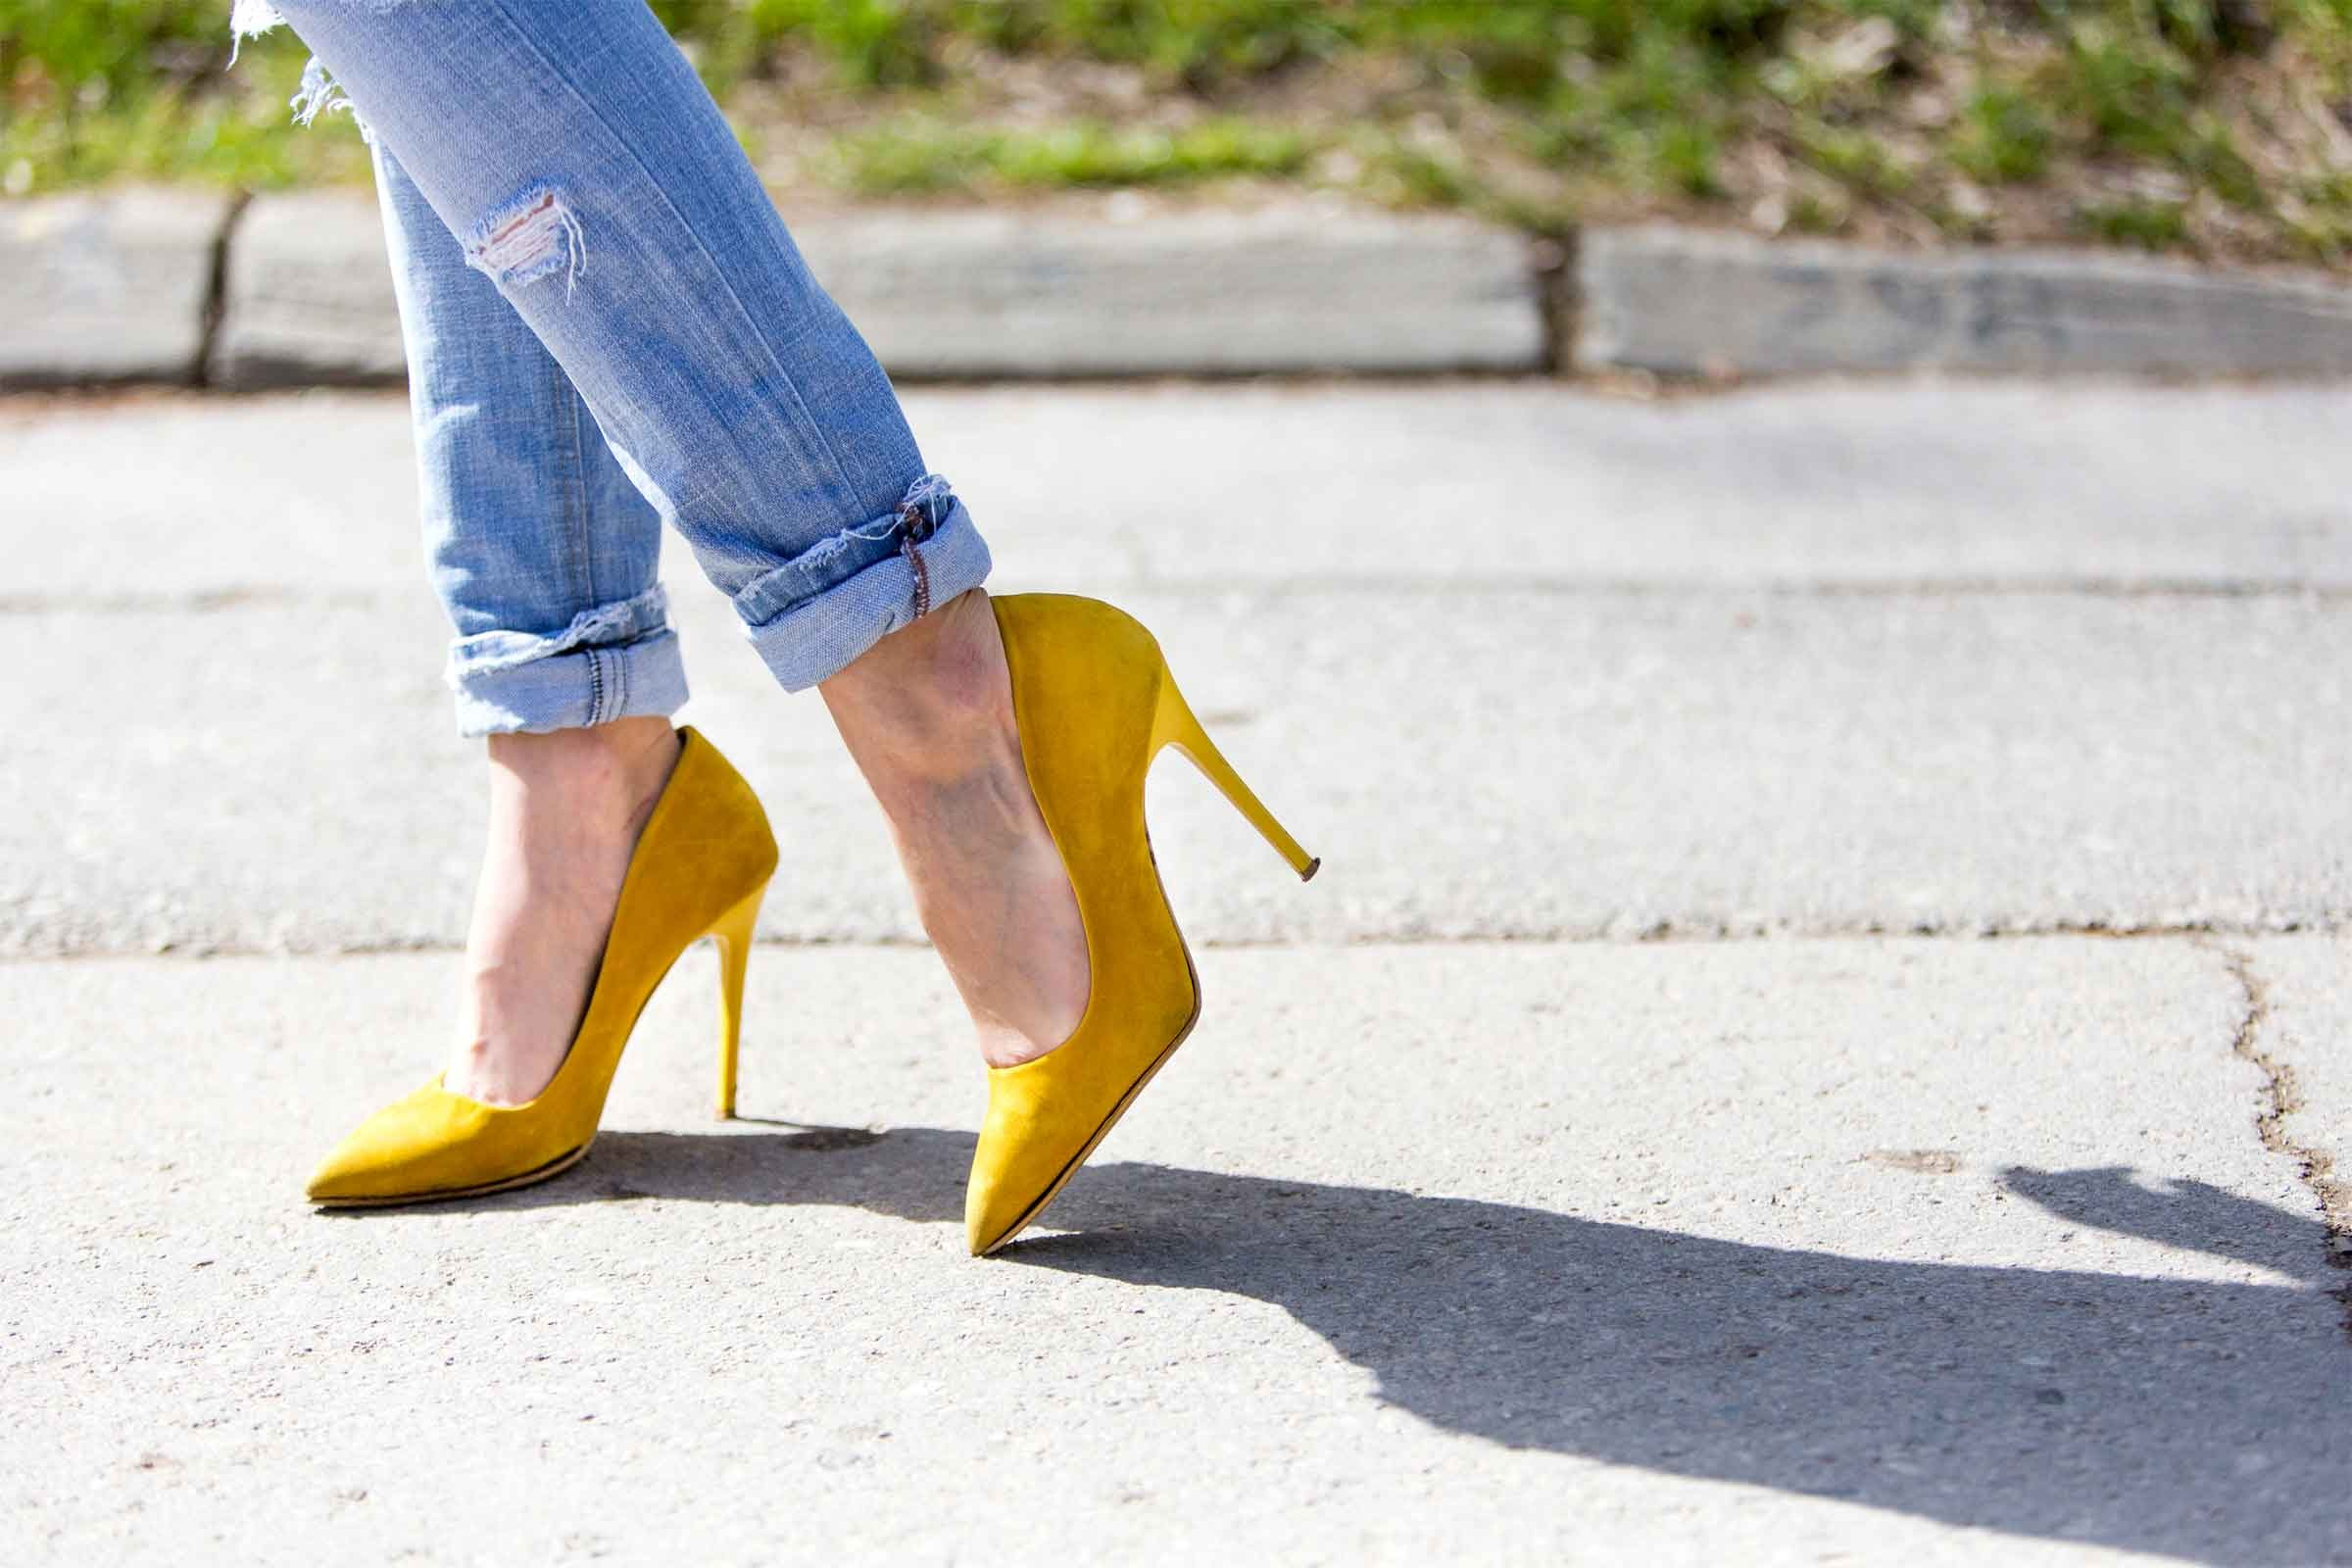 How Wearing High Heels Causes Pain